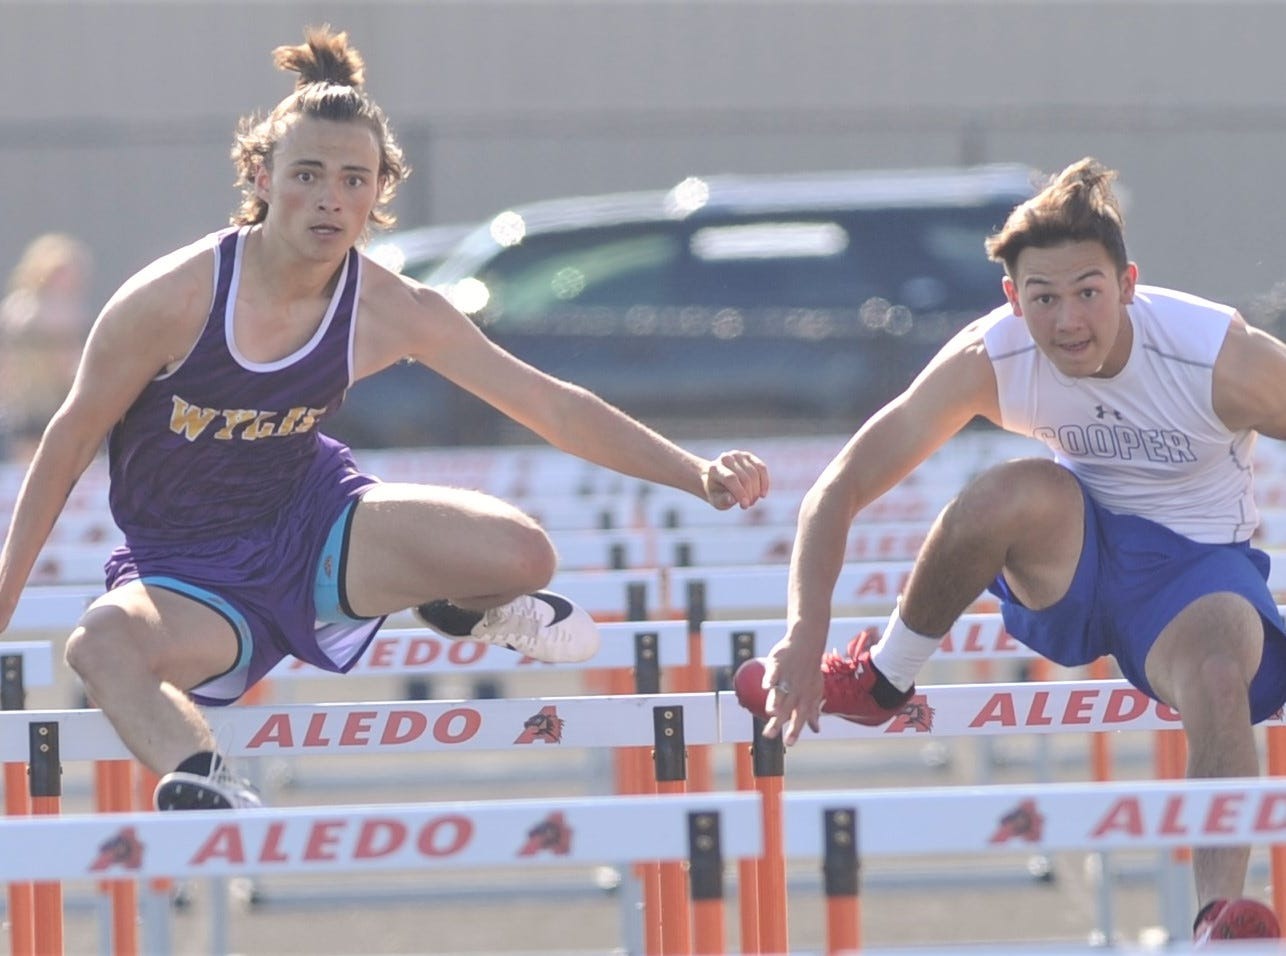 Wylie's Christian Ramirez, left, and Cooper's Justin Deleon eyes the finish in the 110-meter hurdles final at the District 4-5A track and field meet Thursday, April 3, 2019, at Aledo's Bearcat Stadium. Ramirez won the event in 15.55 seconds, while Deleon was second (15.80).